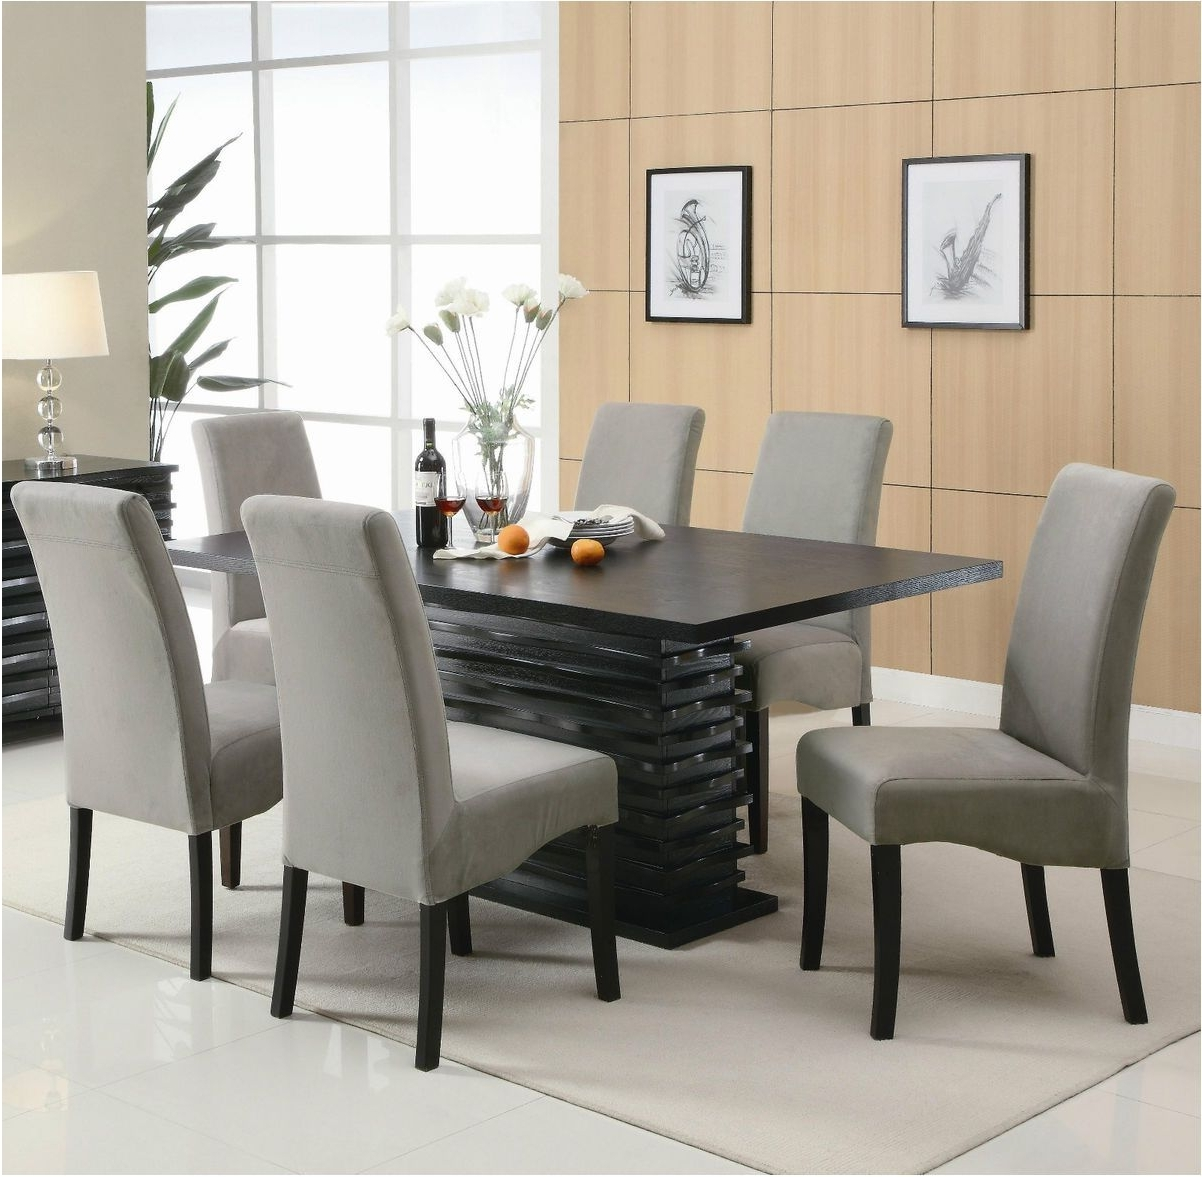 Famous Spectacular Impressive Modern Dining Room Sets Sale Ideas A Inside Modern Dining Table And Chairs (View 7 of 25)